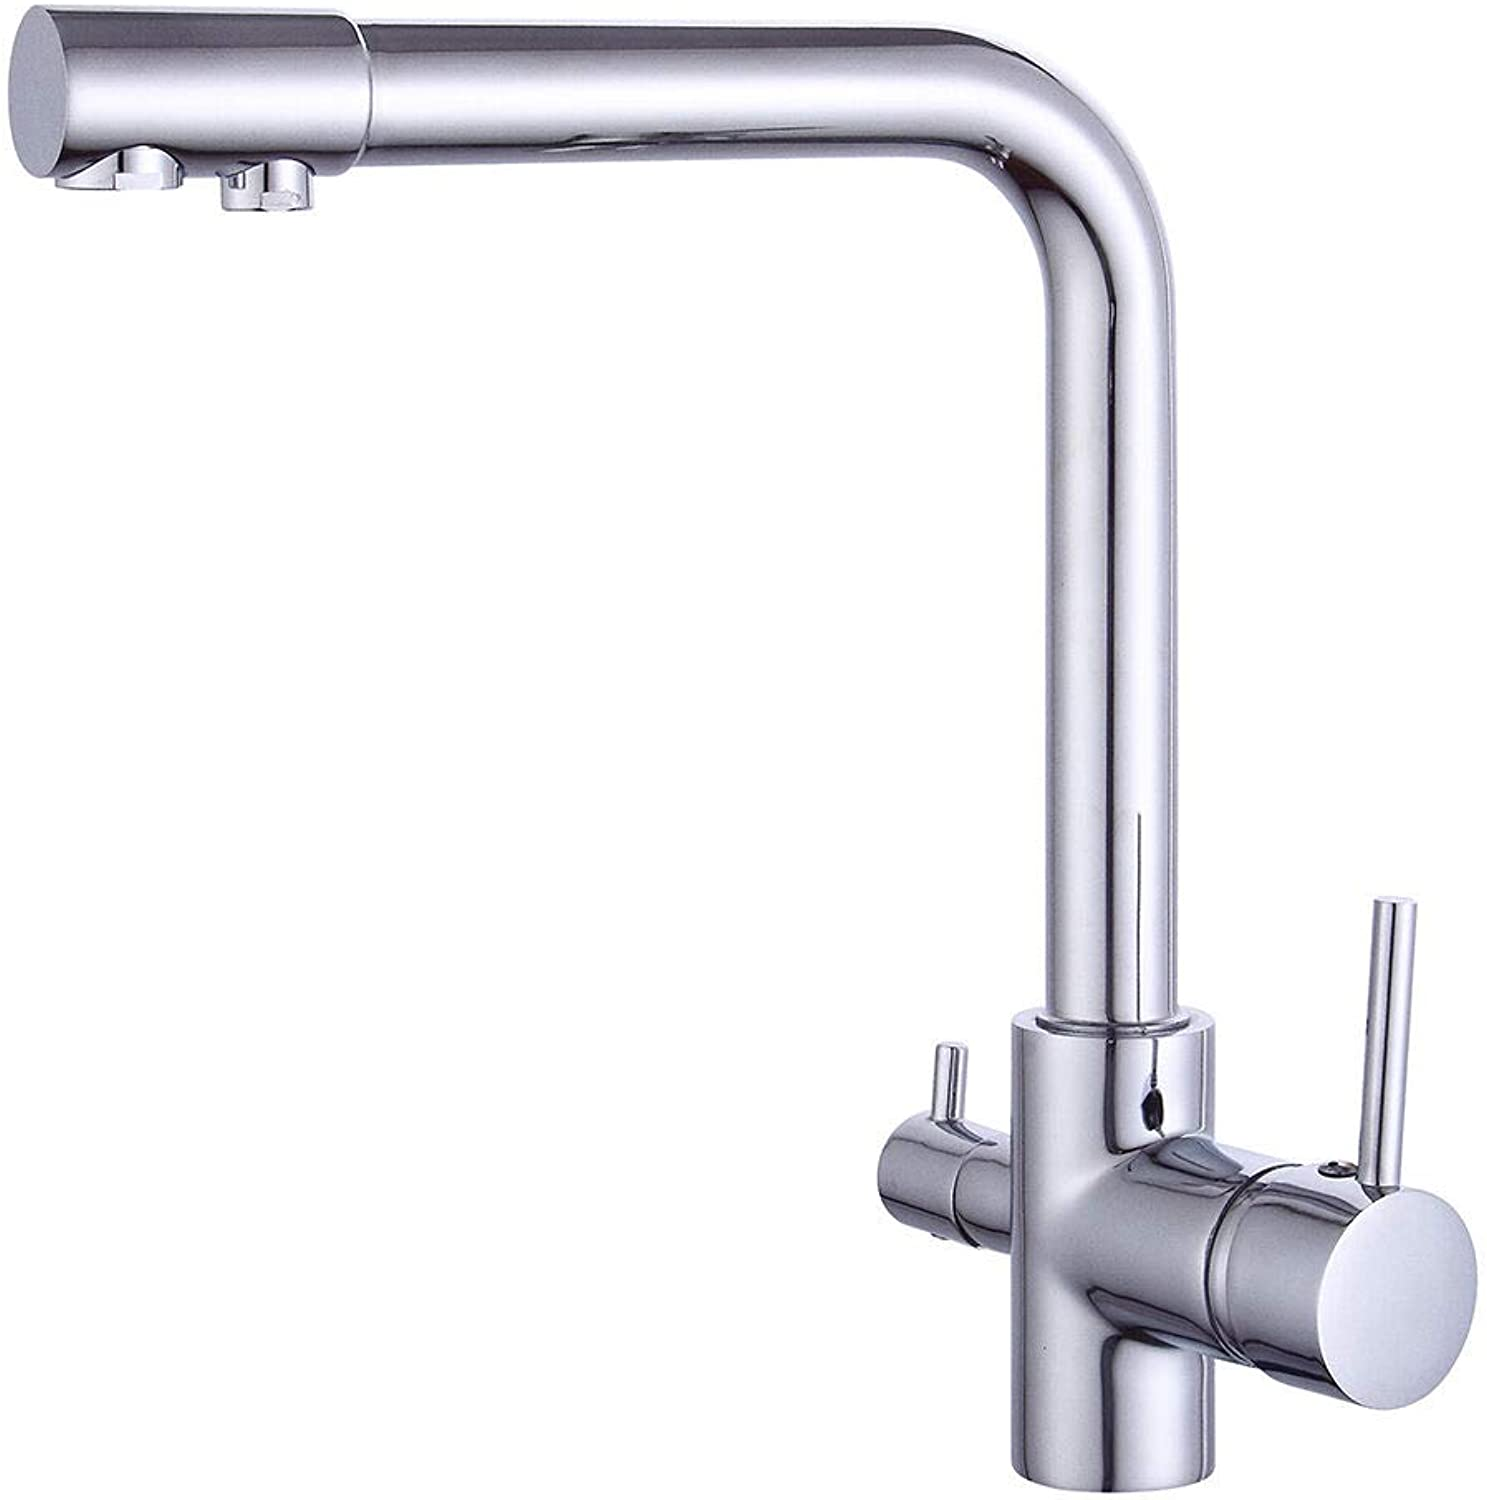 OUKANING 4 Way Tap 3 in 1 Faucet Osmosis System Water Filter Kitchen Tap